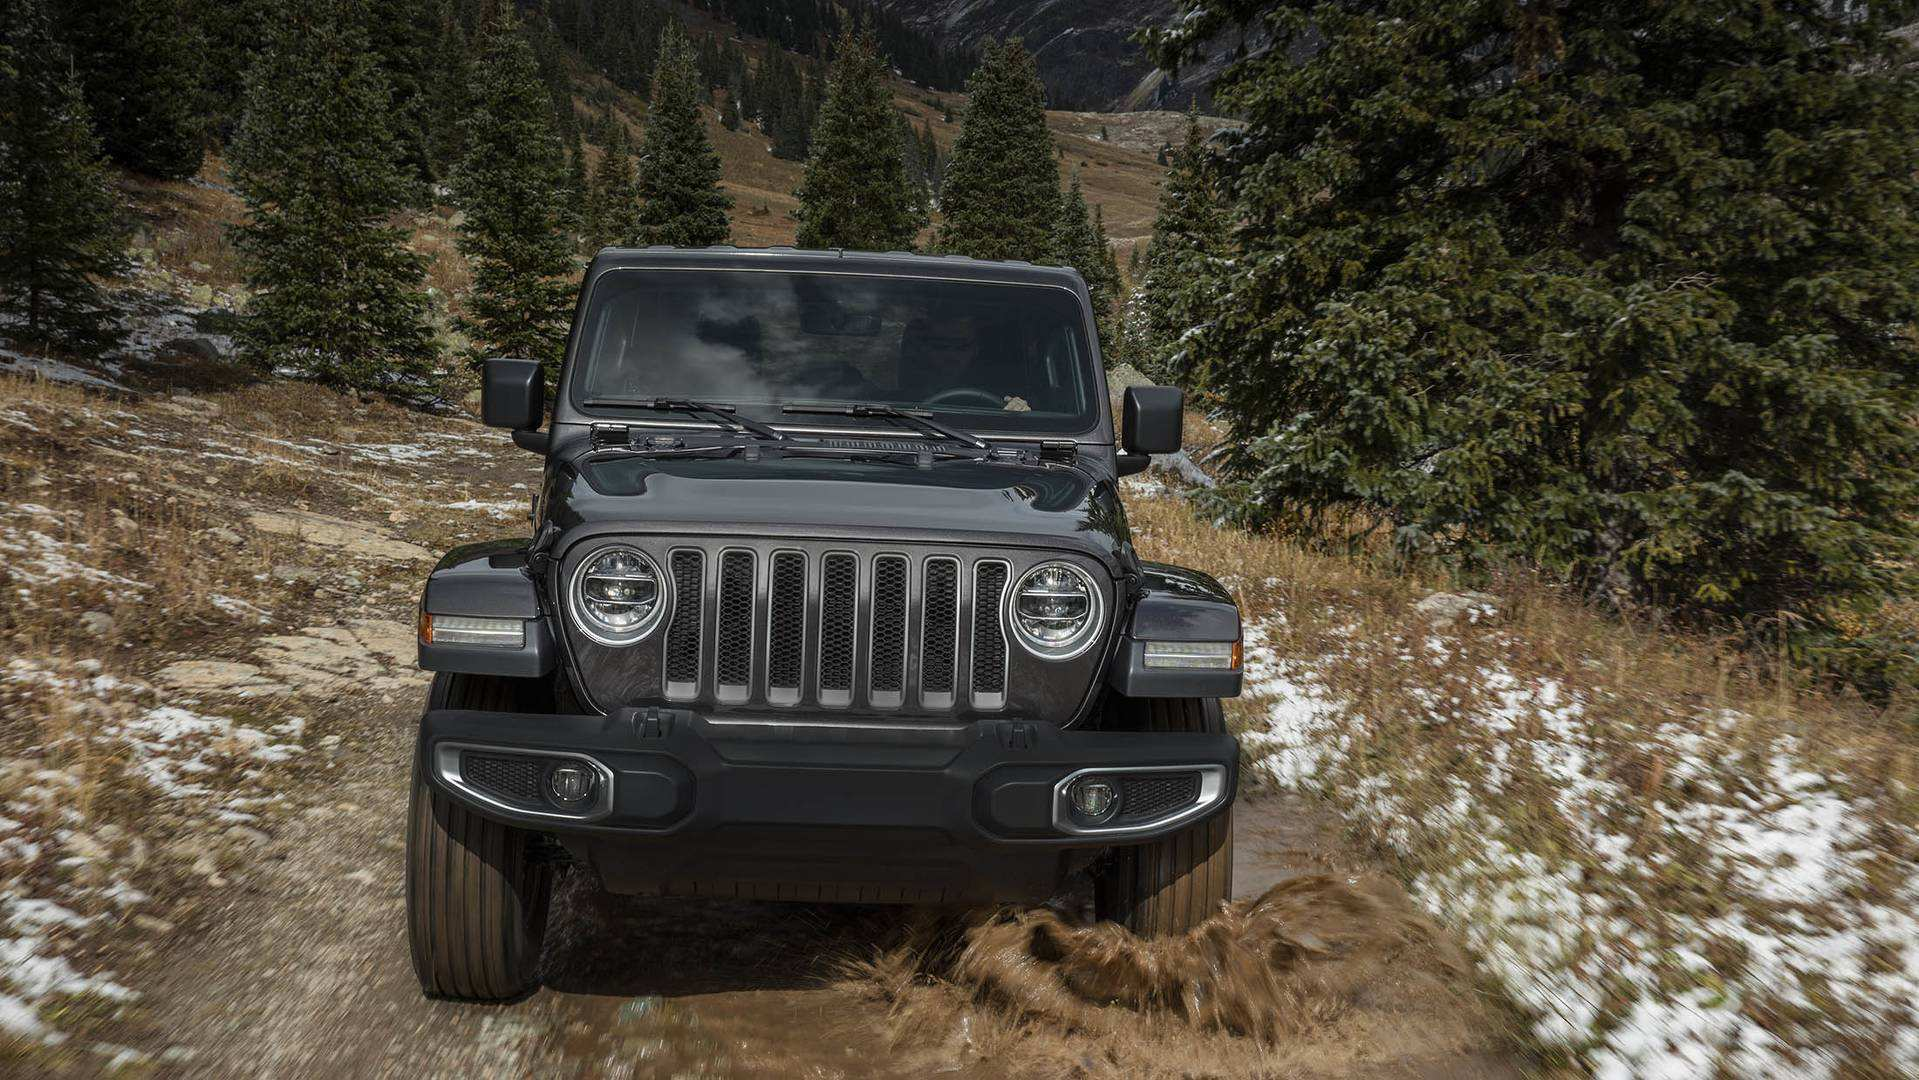 72 Concept of 2019 Jeep Ecodiesel Pictures with 2019 Jeep Ecodiesel